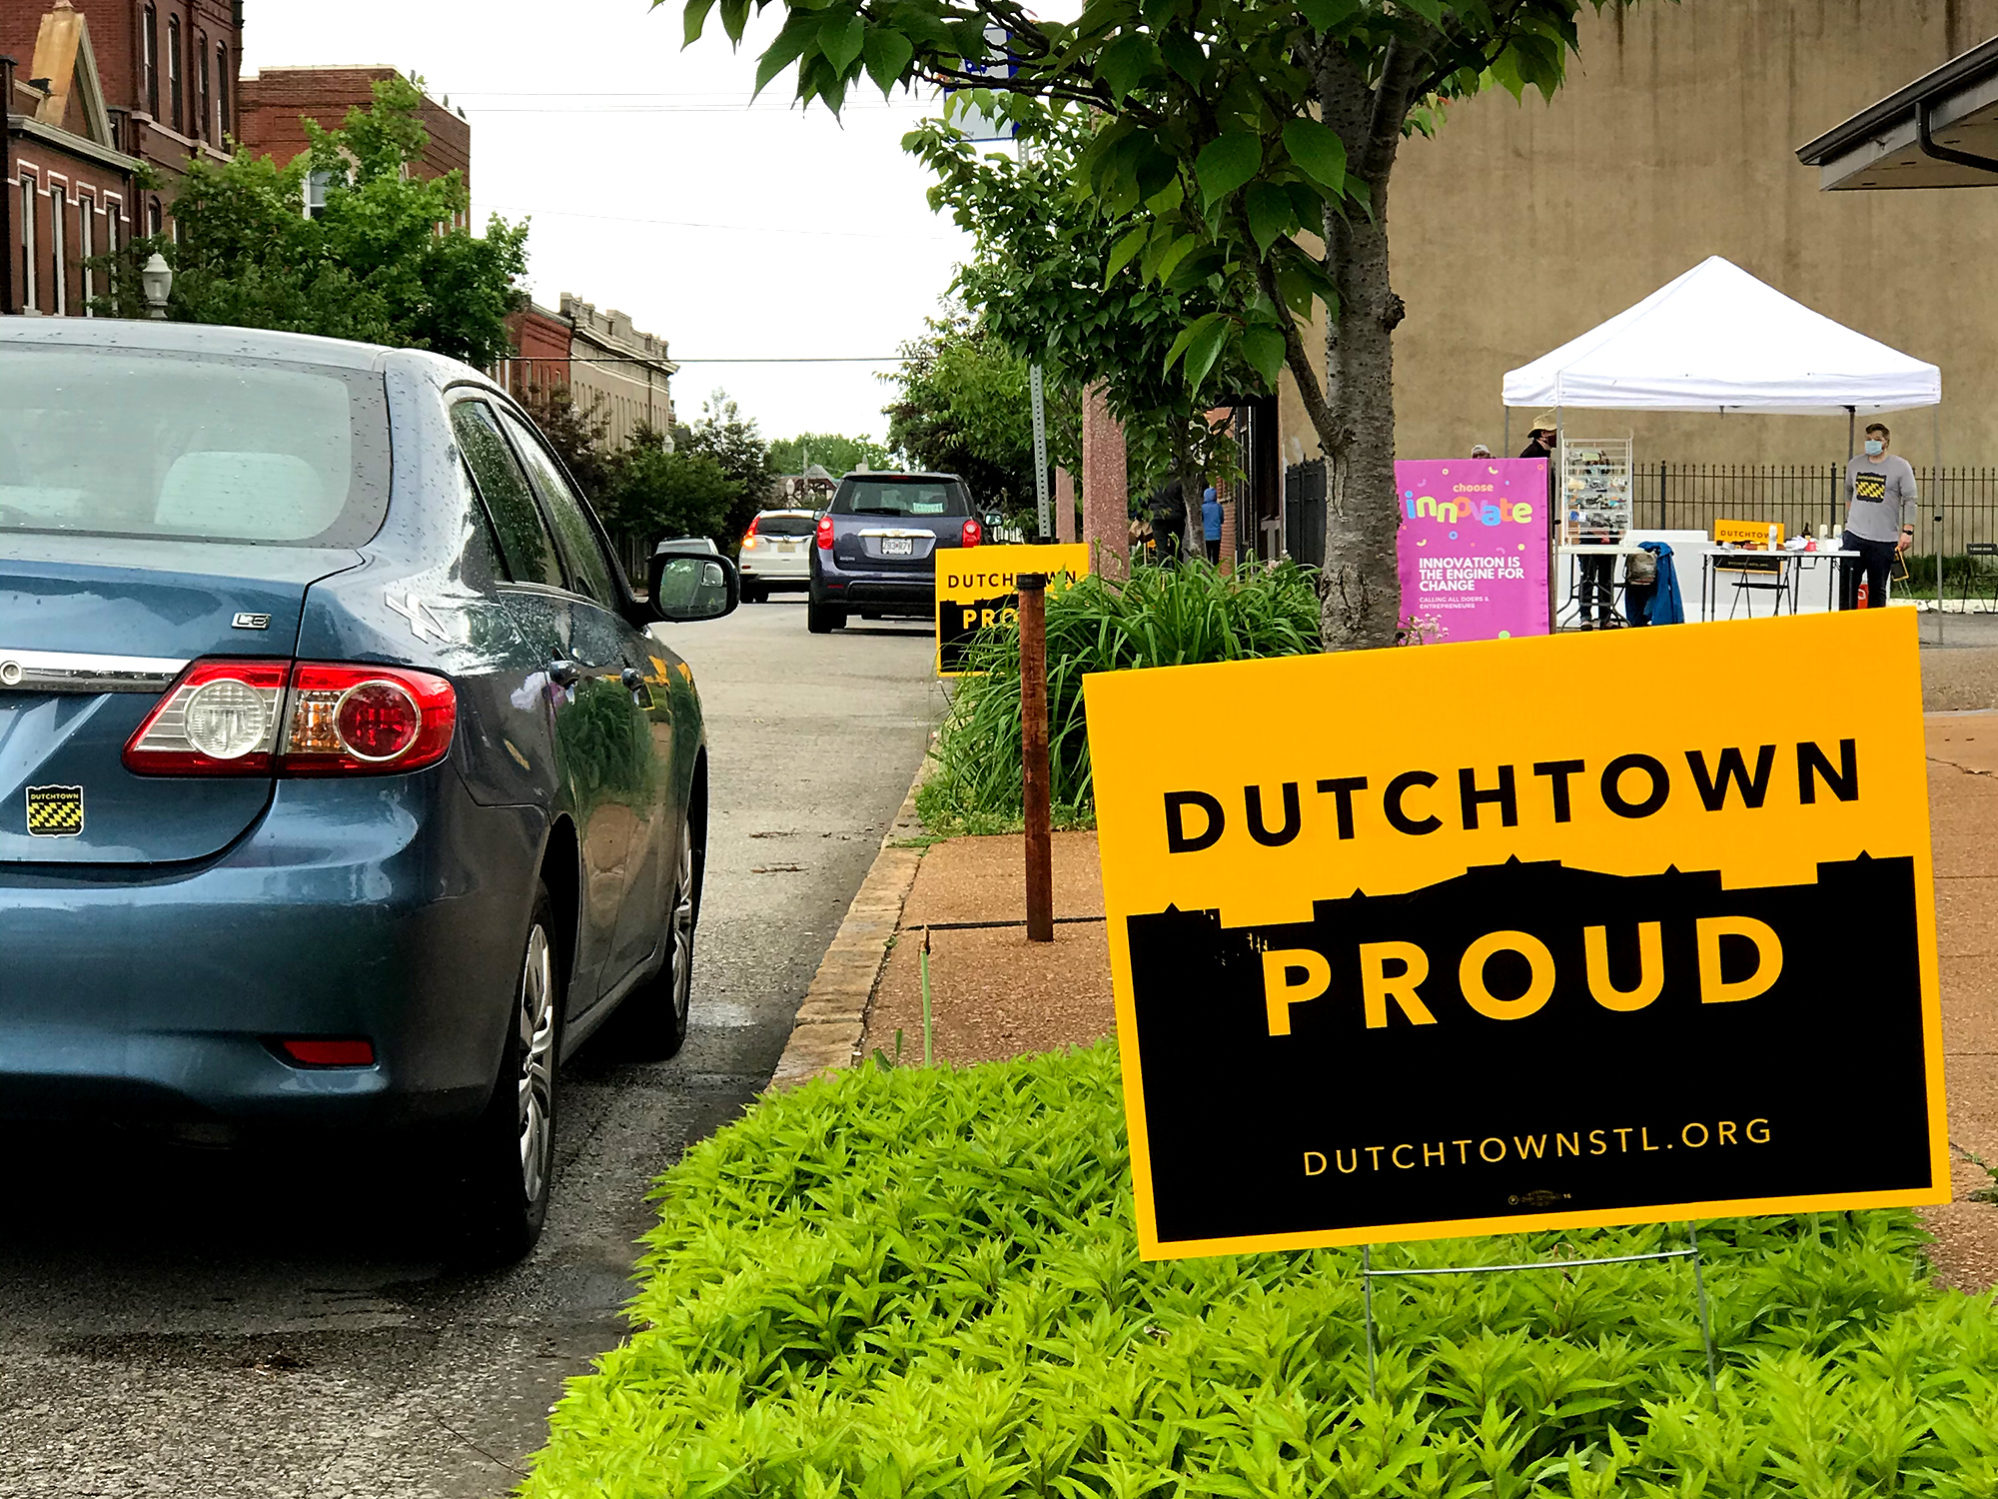 Dutchtown Proud signs in front of the Neighborhood Innovation Center in Downtown Dutchtown.